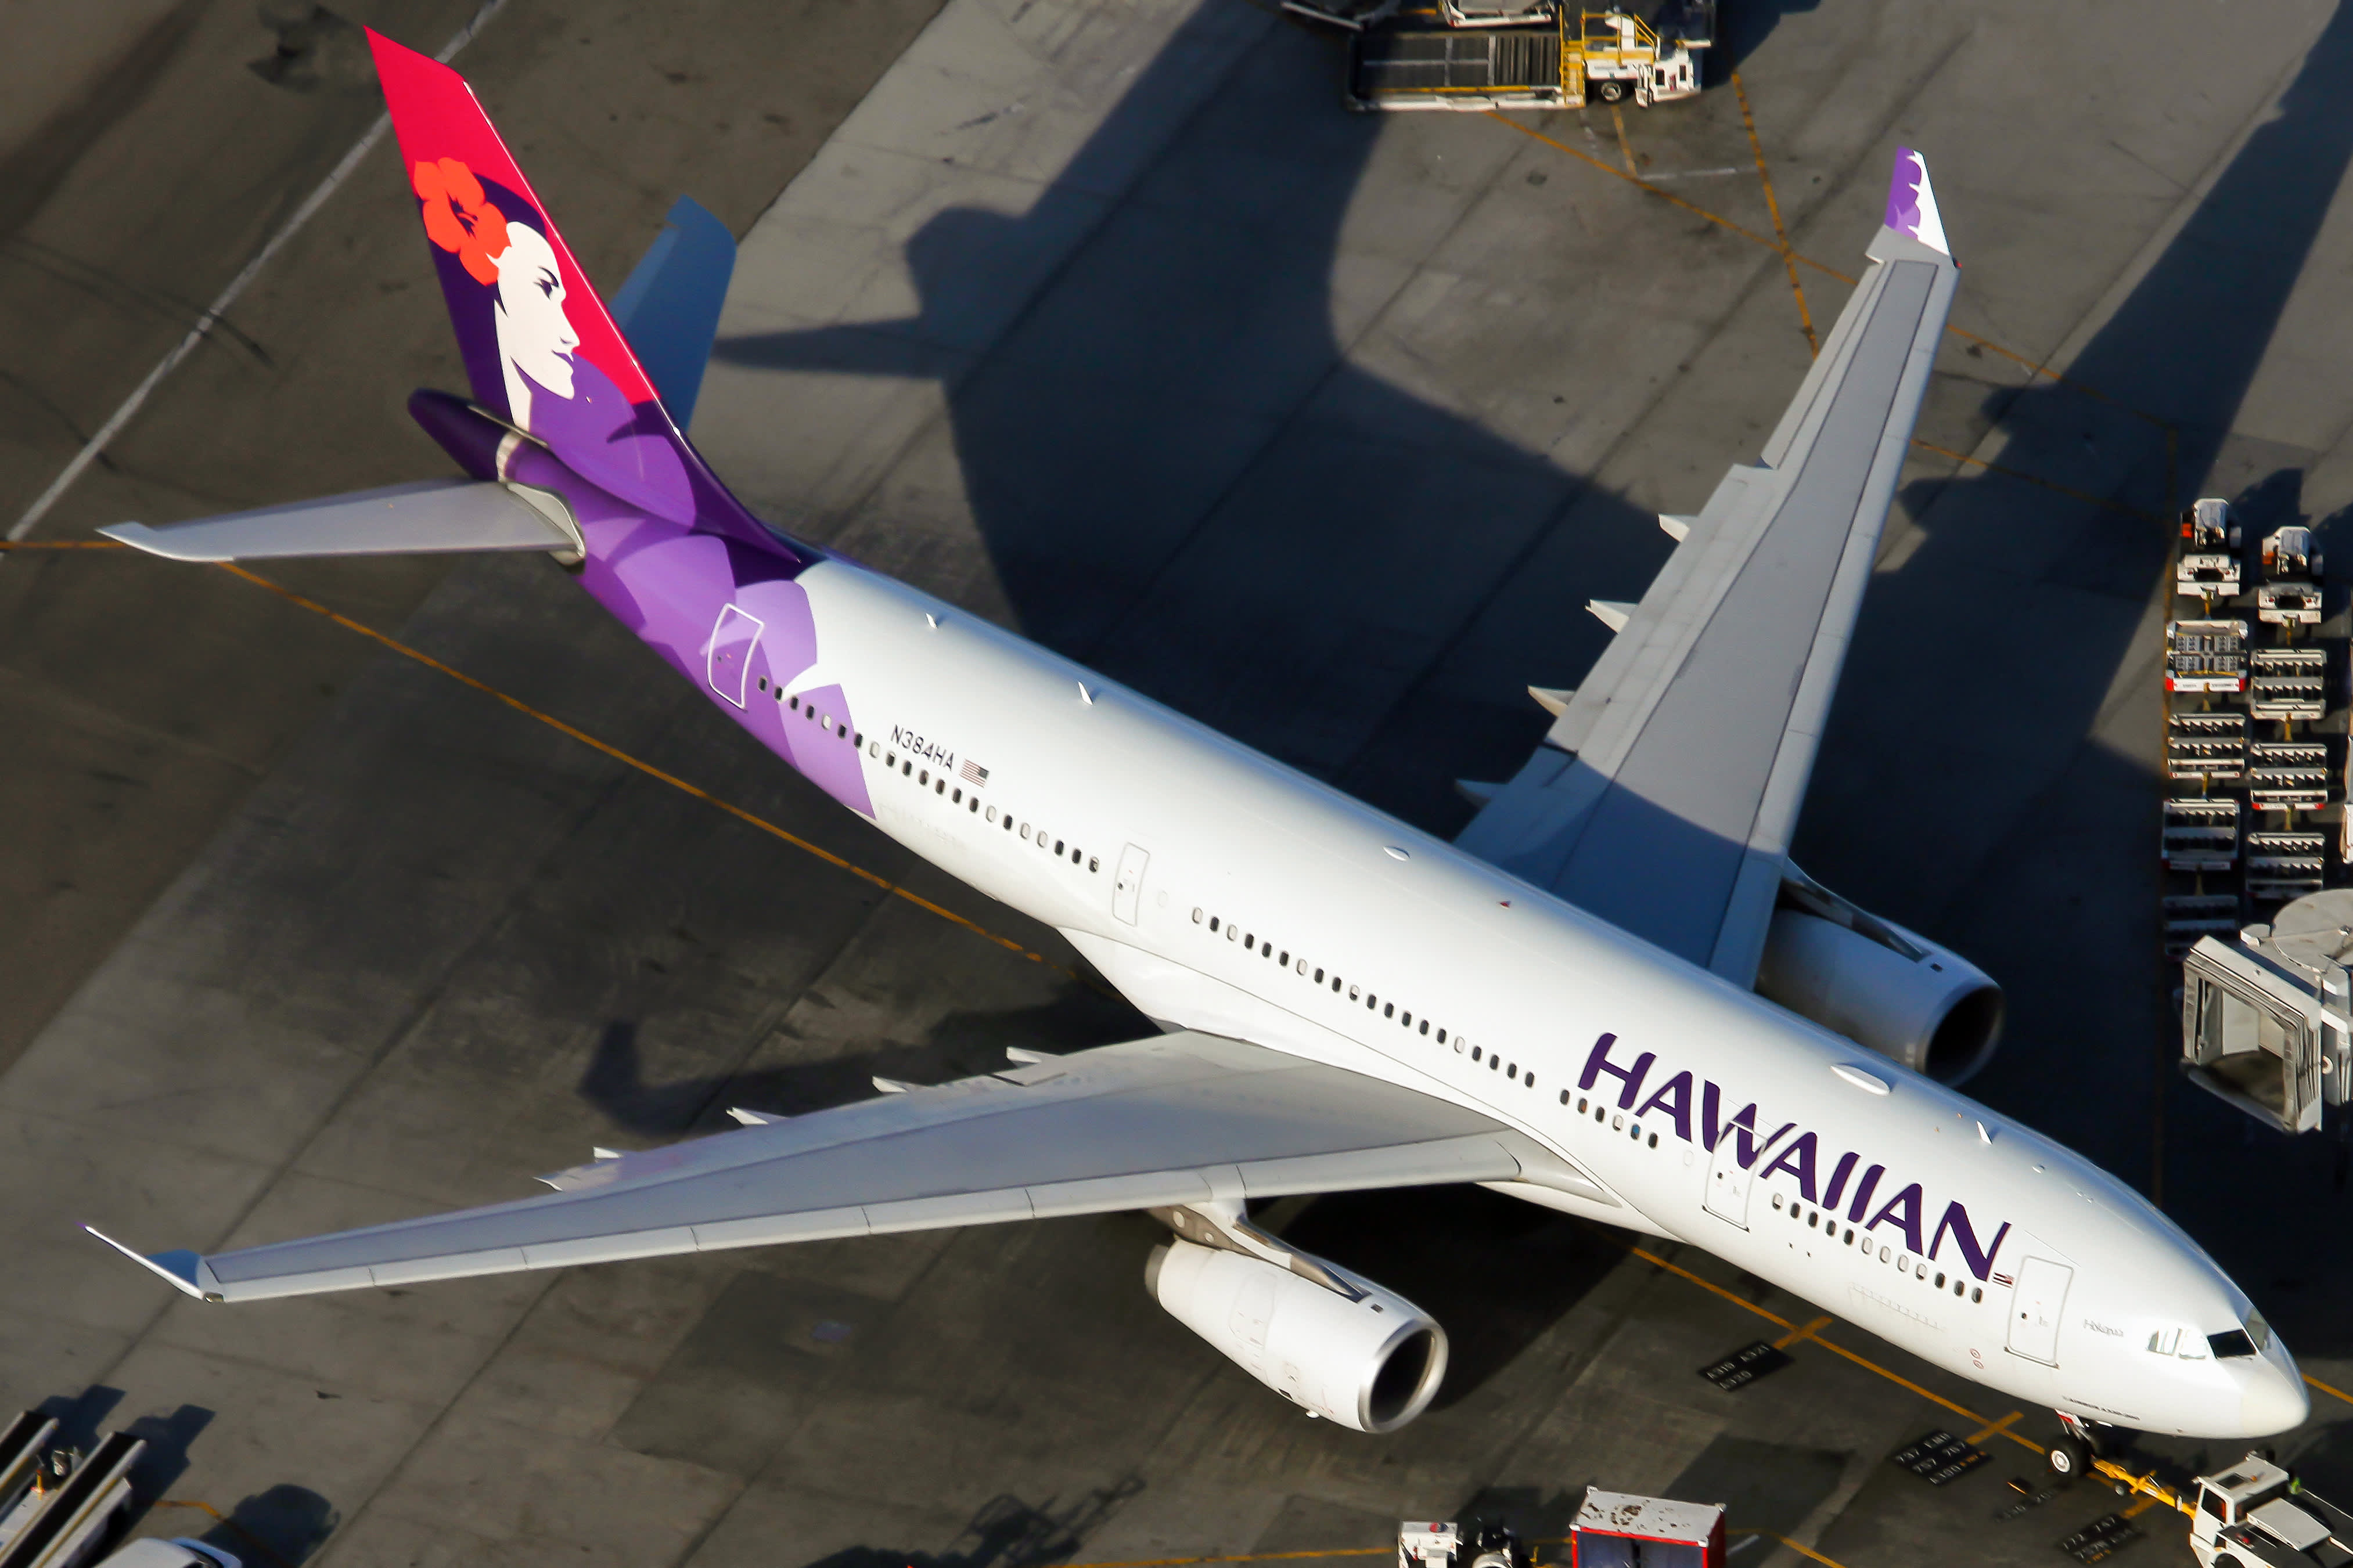 Hawaiian Airlines CEO says airline is optimistic about 2021 travel three new routes – CNBC